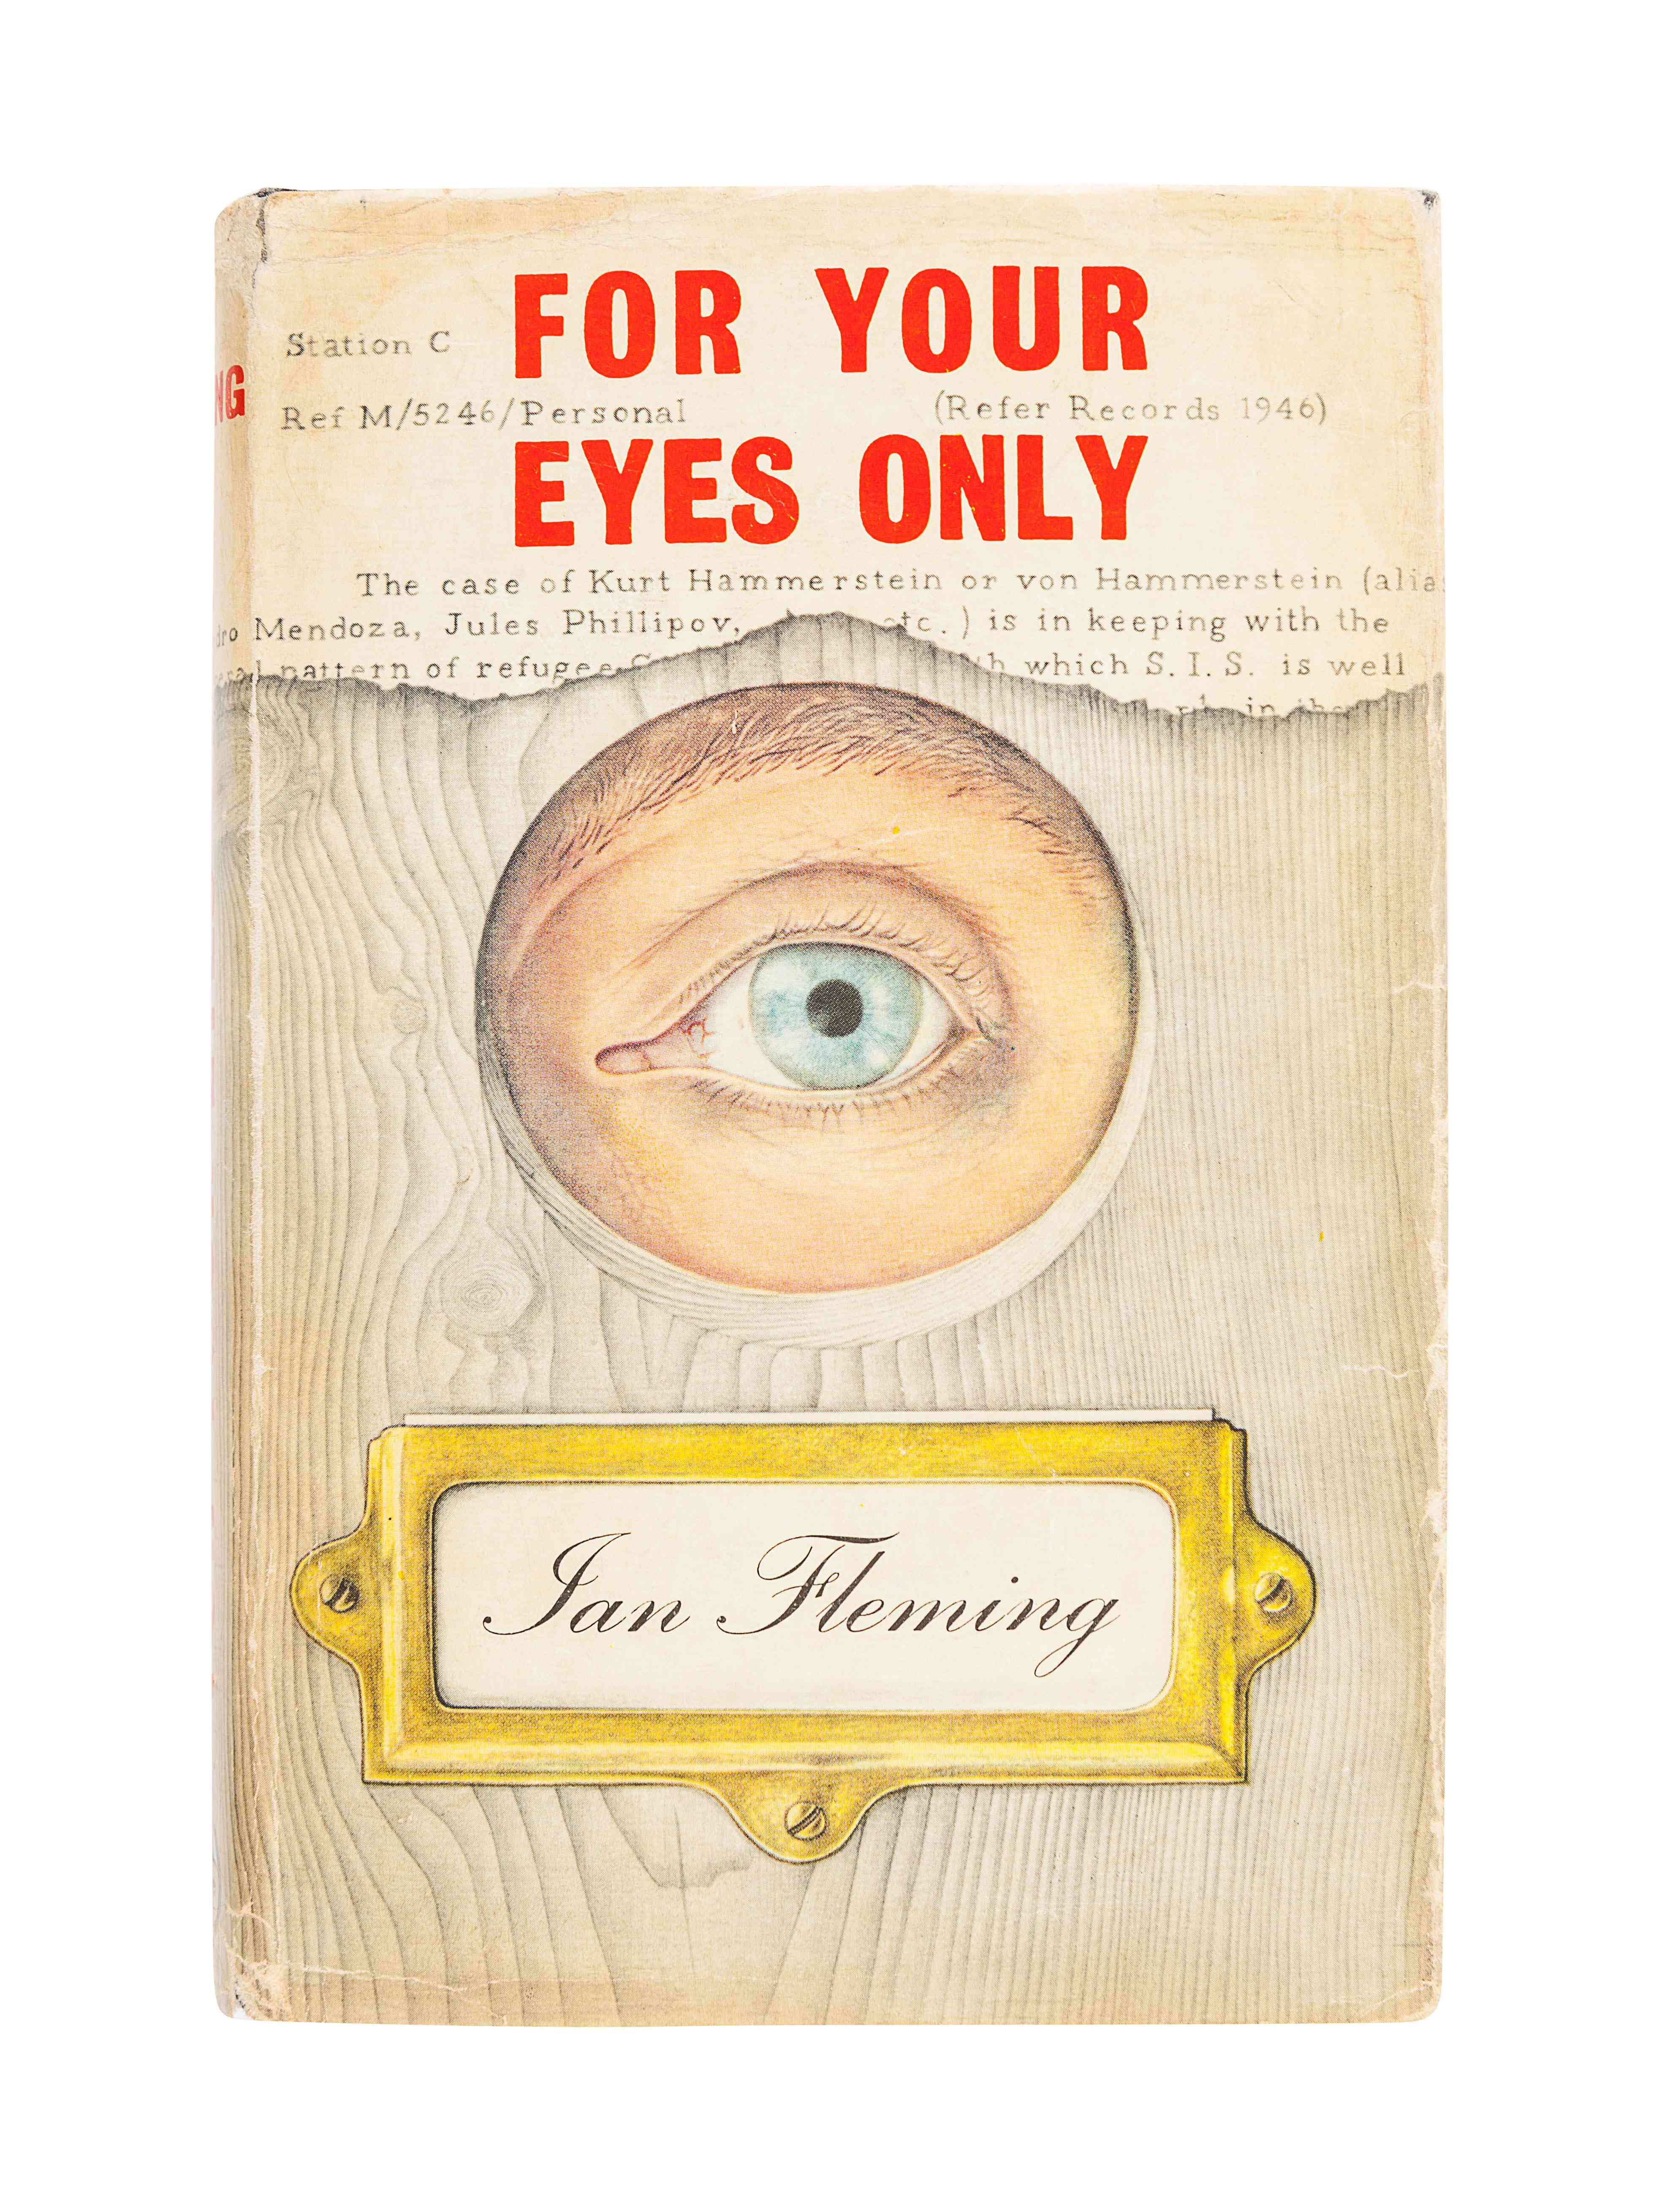 FLEMING, Ian (1908-1964). For Your Eyes Only. London: Jonathan Cape, 1960.